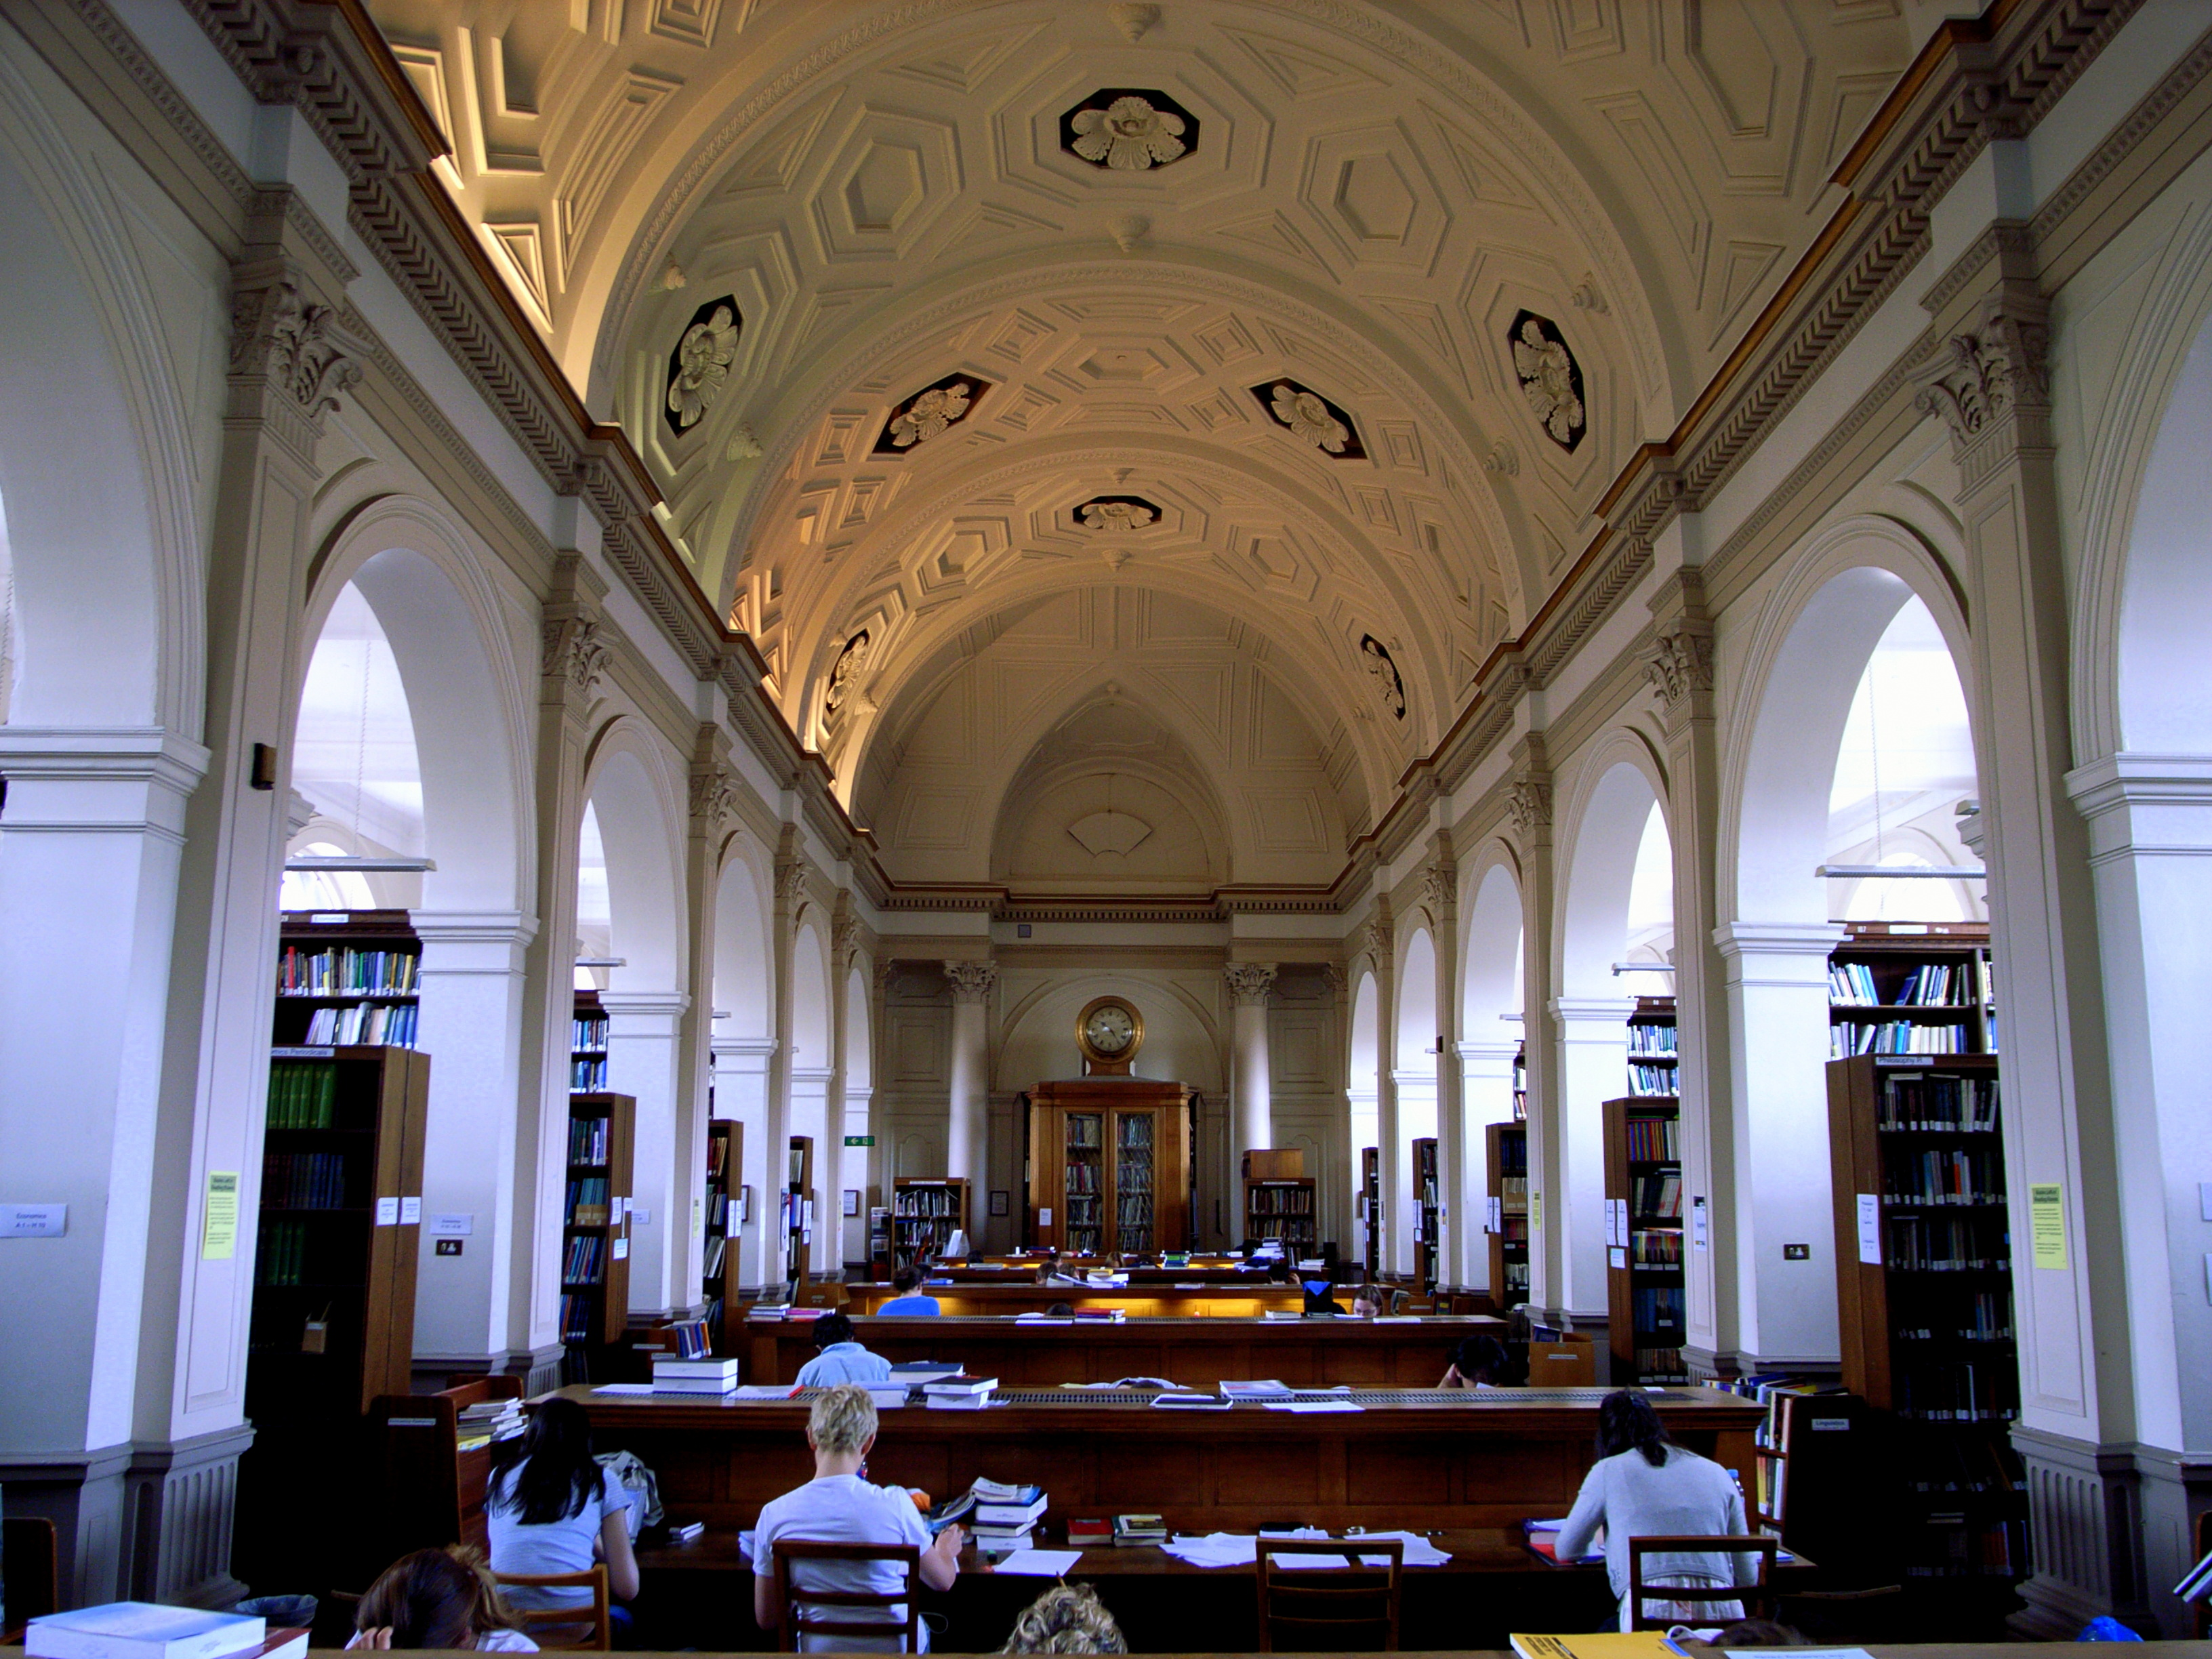 Donaldson Reading room, UCL. source: Wikicommons